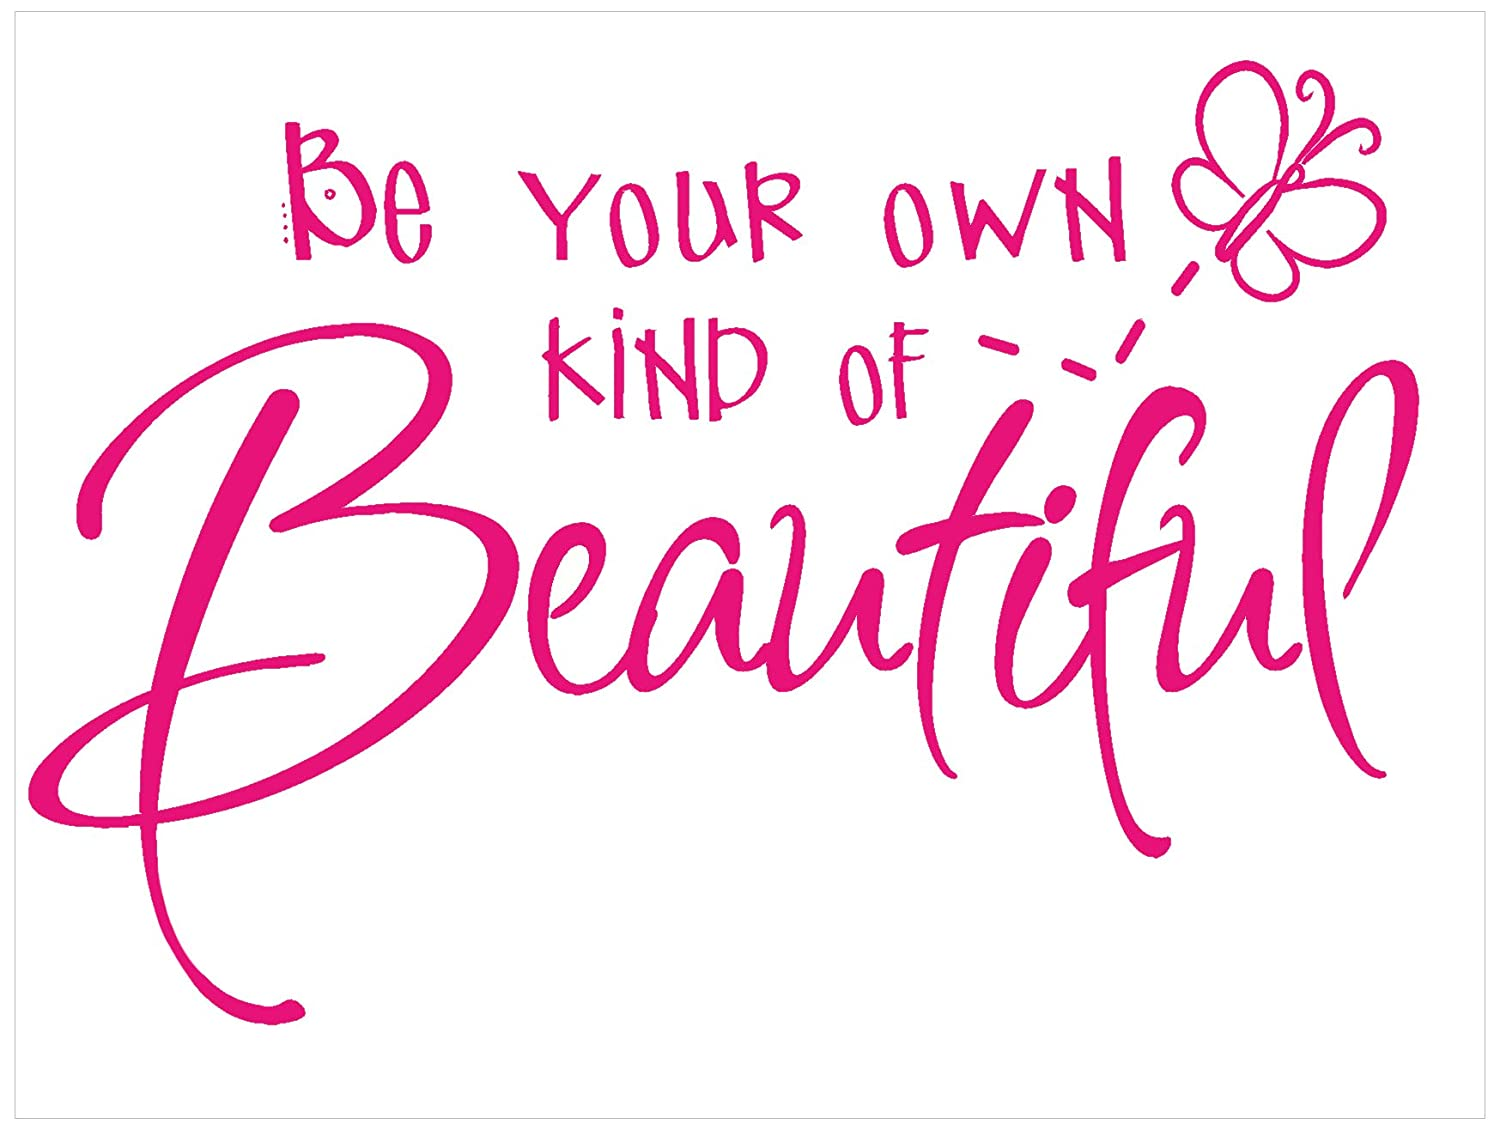 Wall Décor Plus More WDPM005 Be Your Own Kind of Beautiful Decal Wall Vinyl Sticker, 22 x 15-Inch, Hot Pink